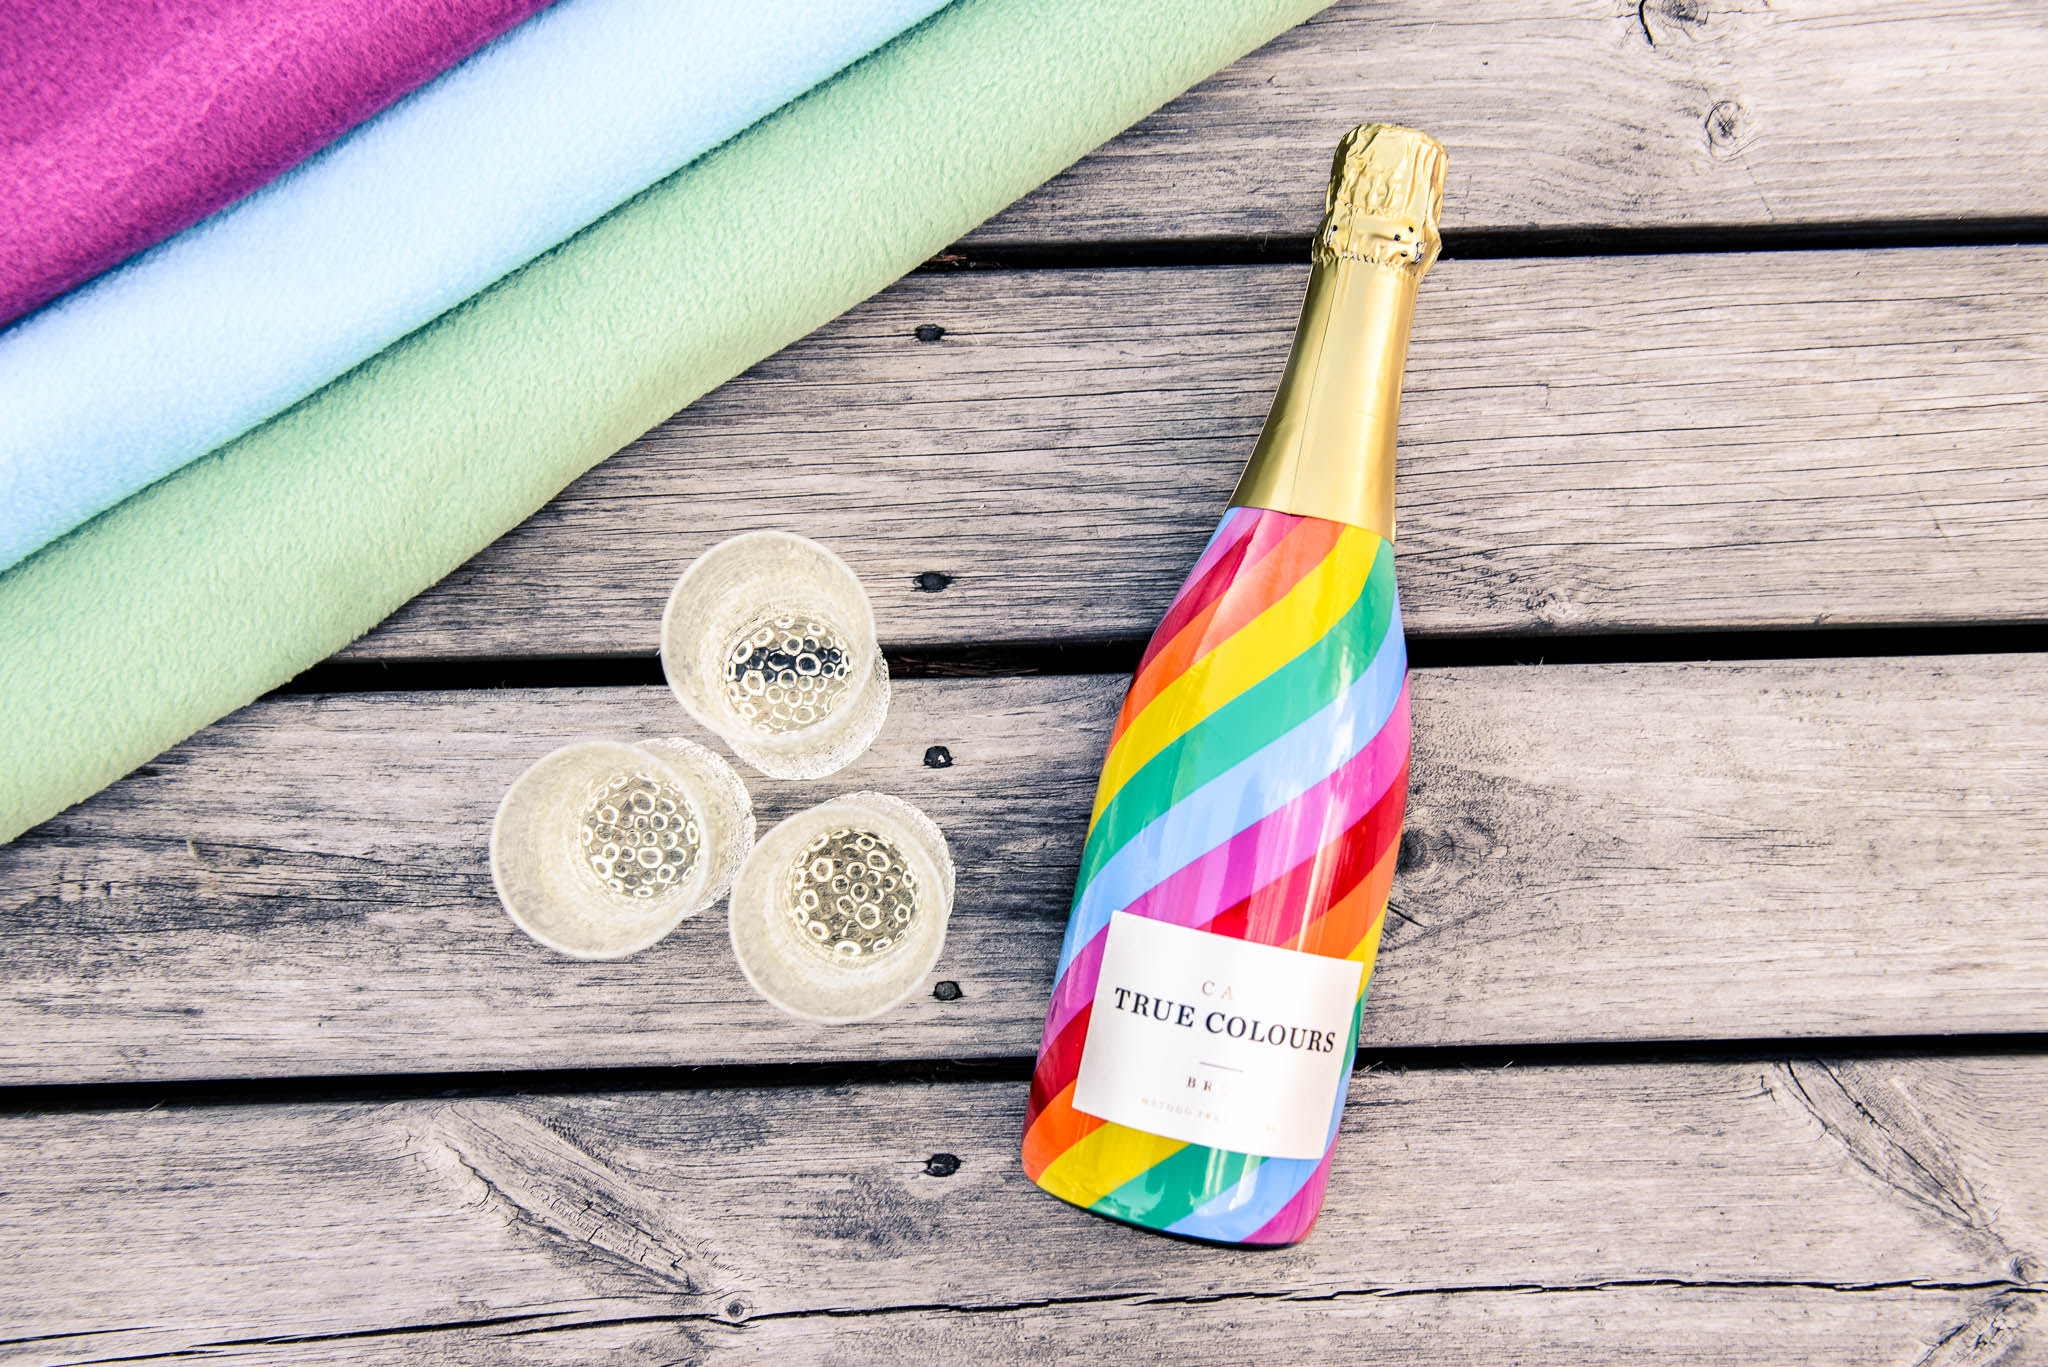 True colours cava with Ultima thule glasses on wood